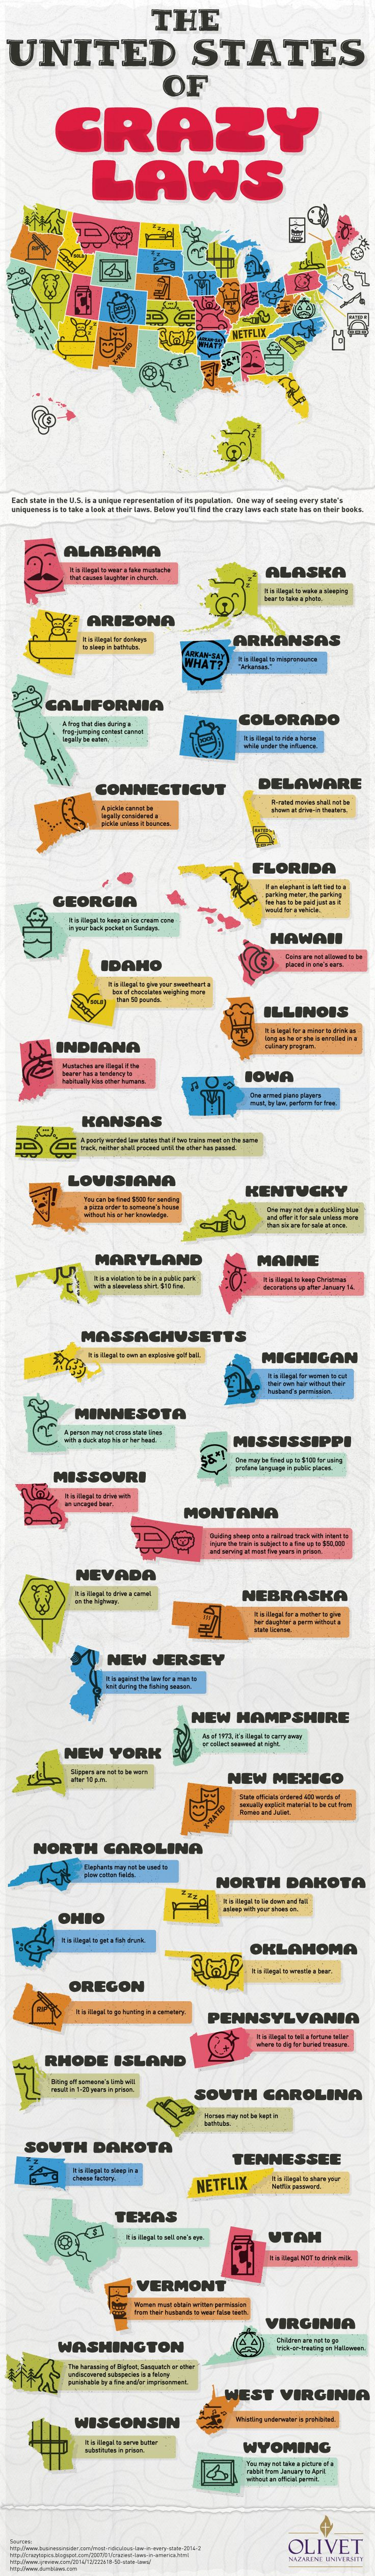 This Map Shows The Craziest Laws By State. You've Probably Broken Some Without Even Knowing [MOBILE STORY]